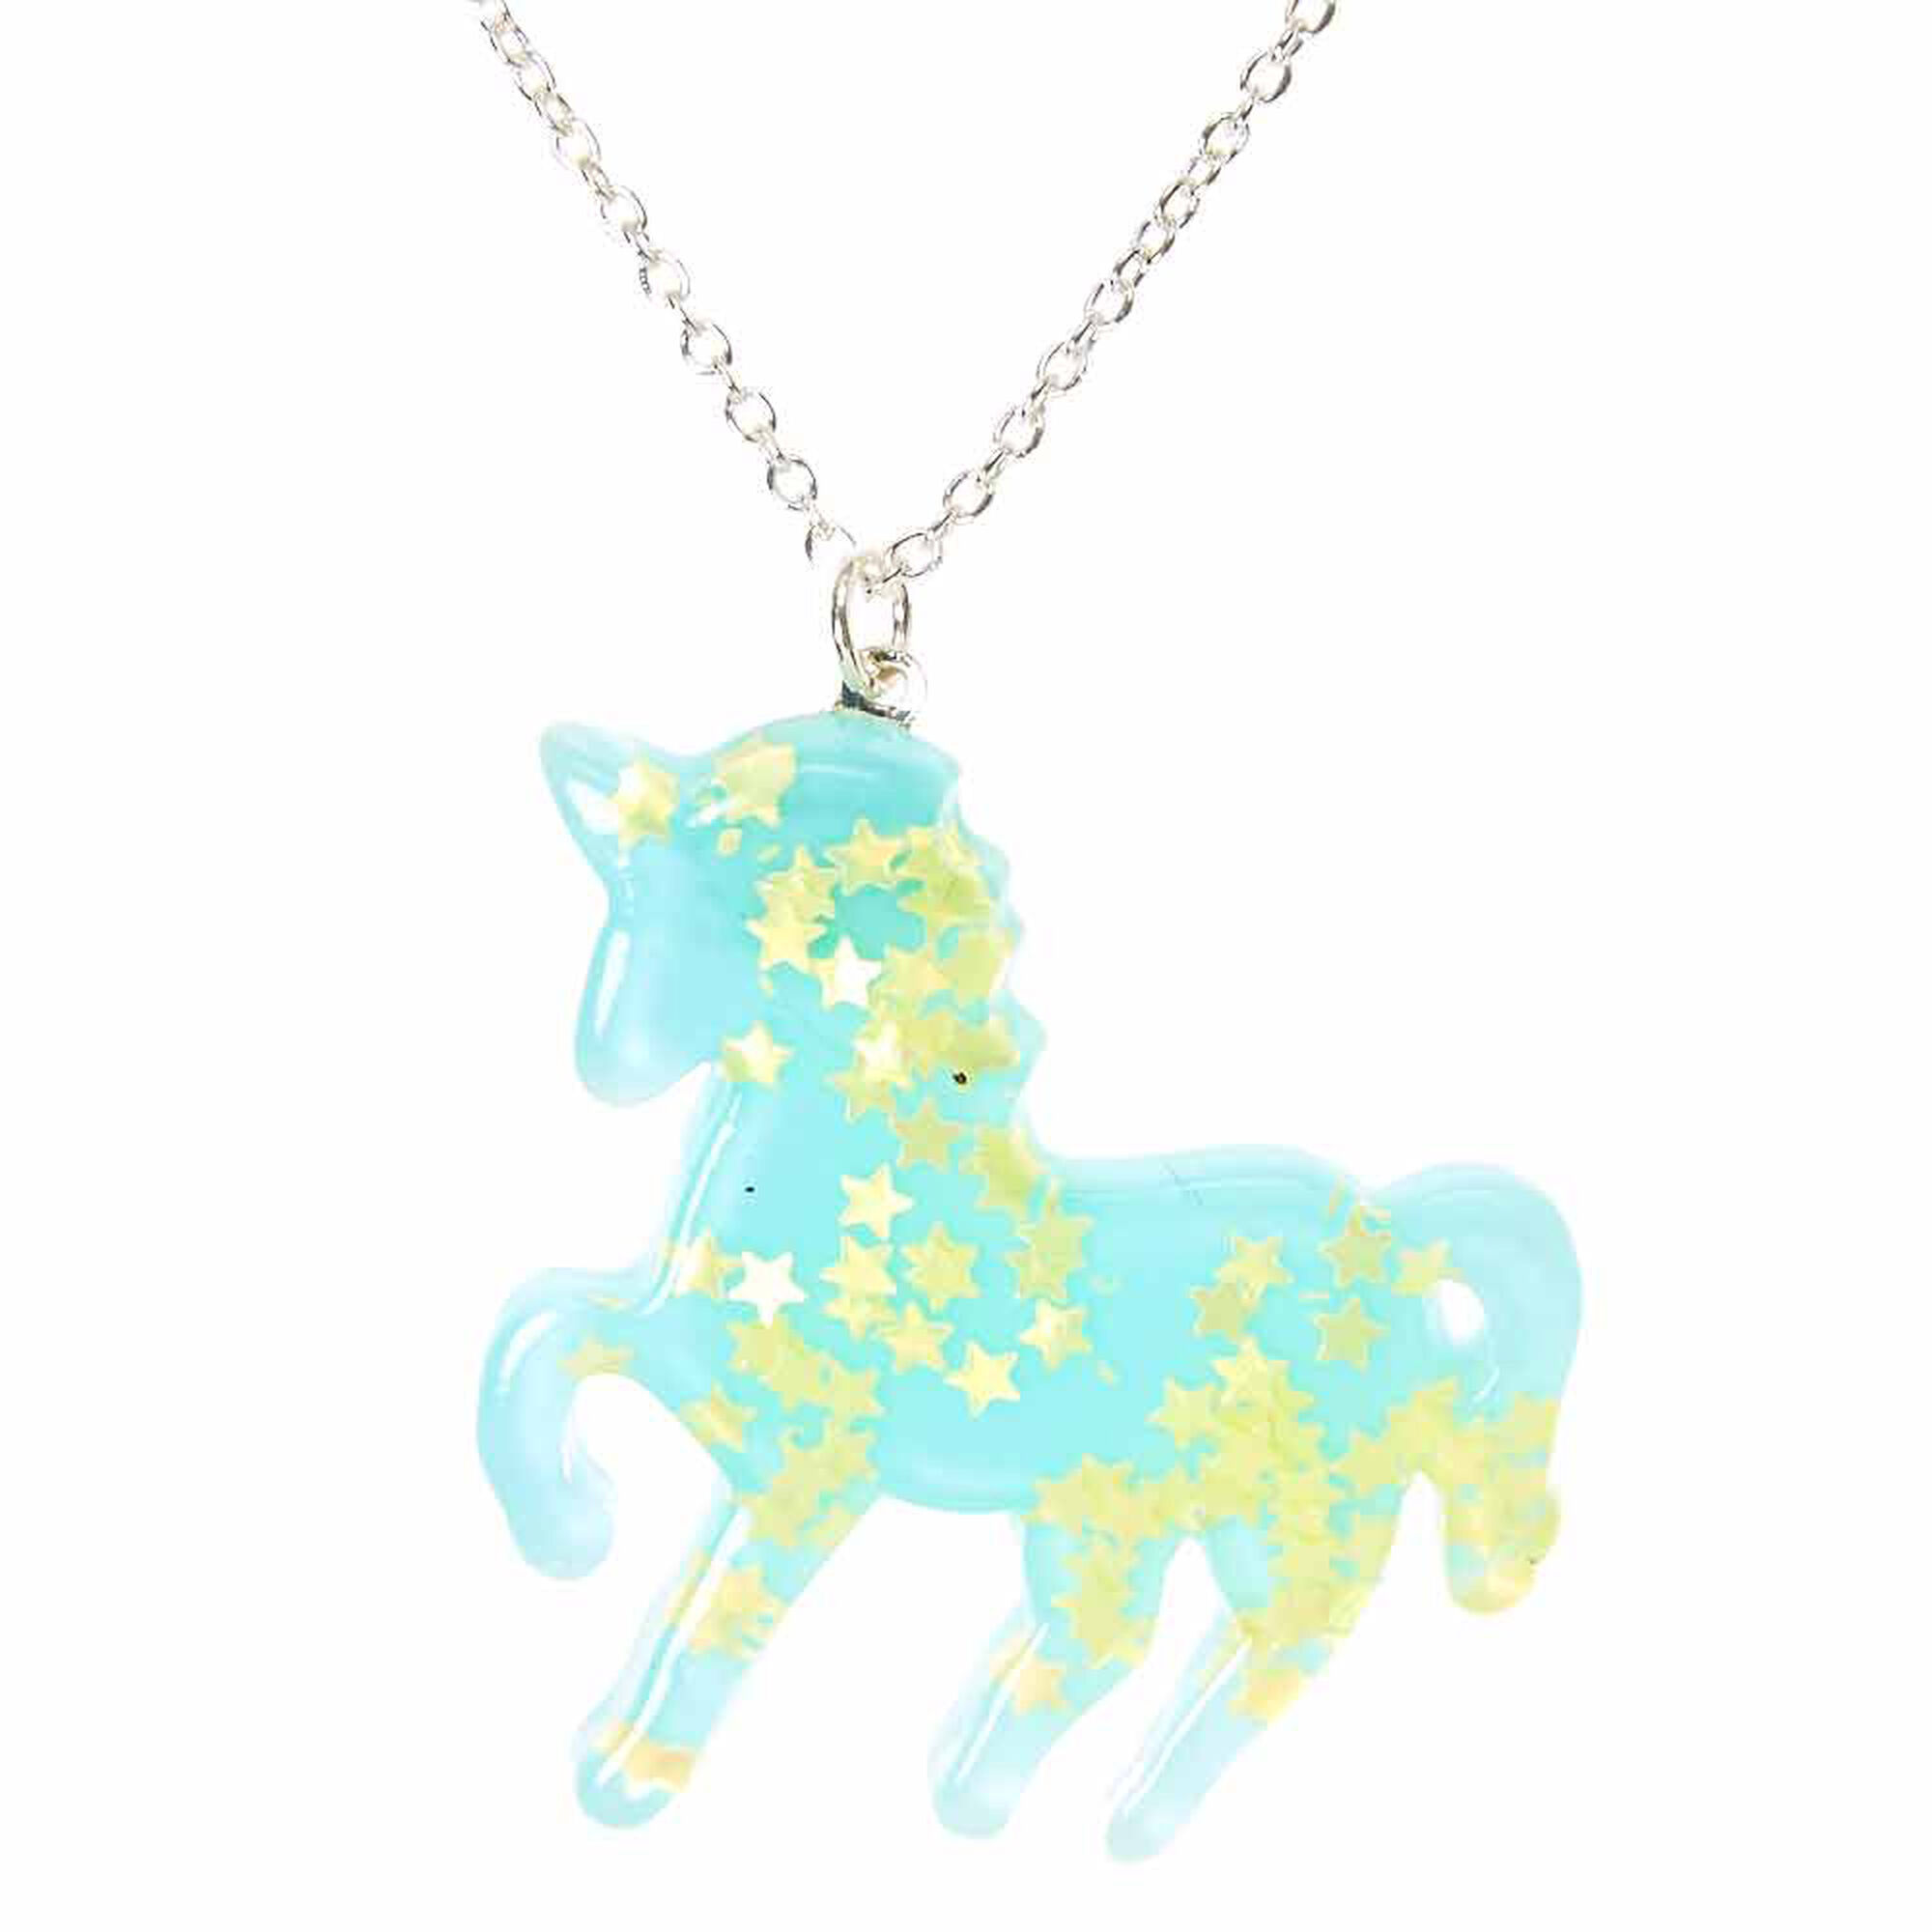 hei crystal wid prd elements op unicorn crystals product pendant with made artistique silver jsp necklace sterling sharpen swarovski